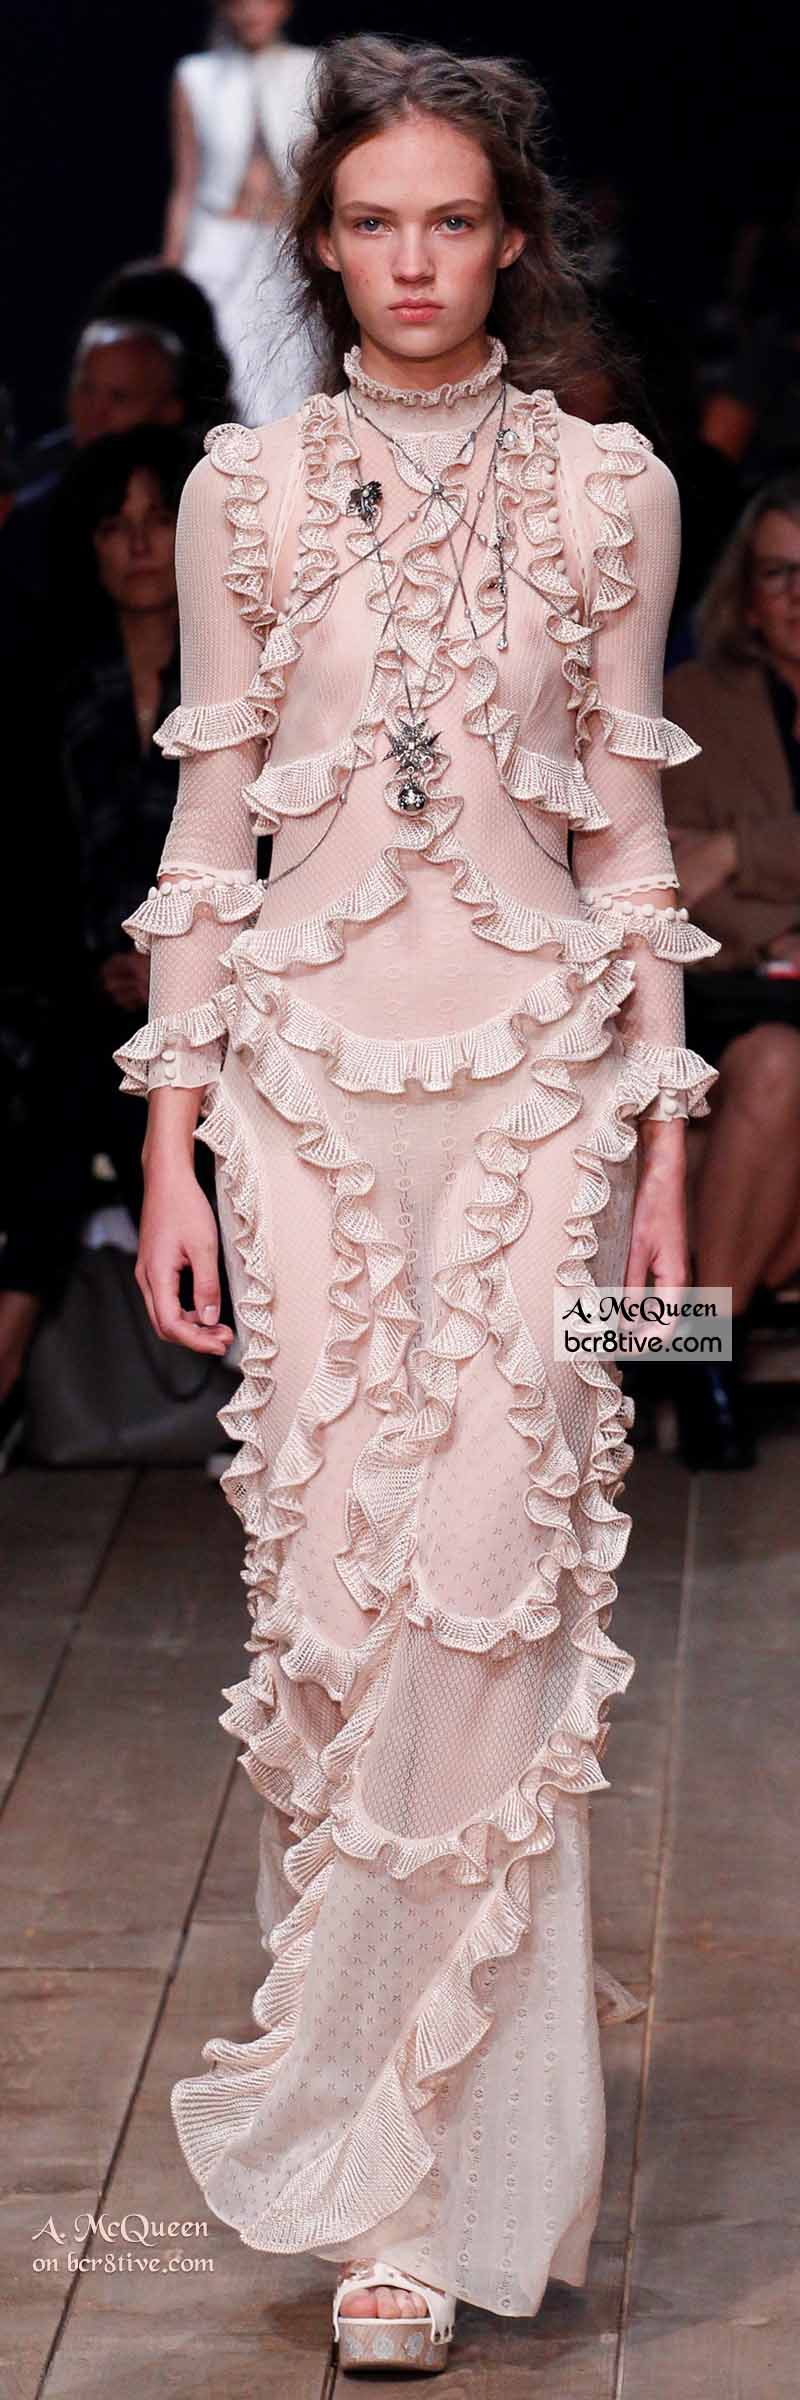 Curvy Ruffled Evening Gown - The Best of Alexander McQueen 2016